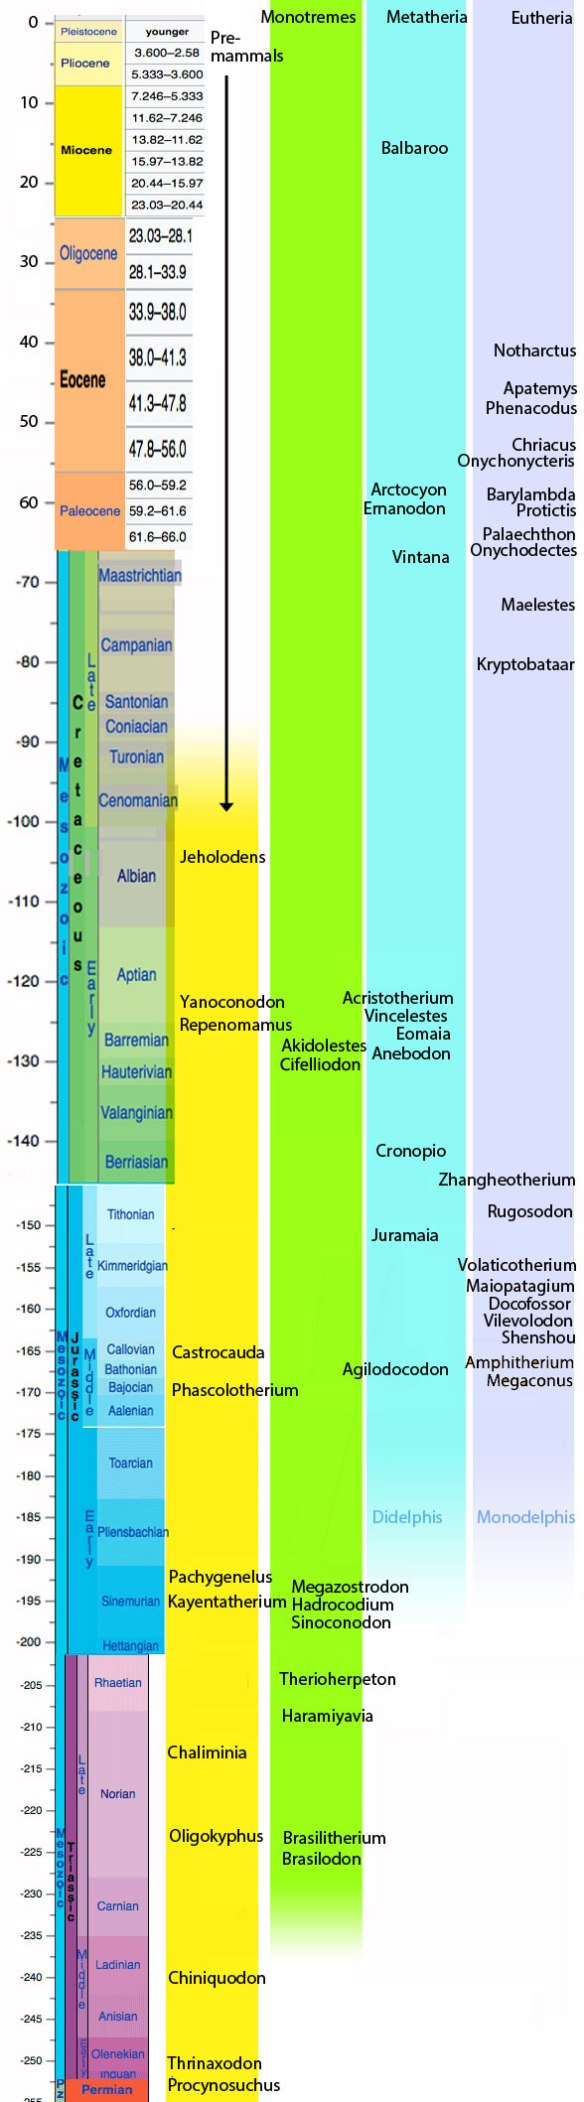 Figure 2. Mesozoic time line showing the first appearances of several fossil mammals and the clades they belong to.